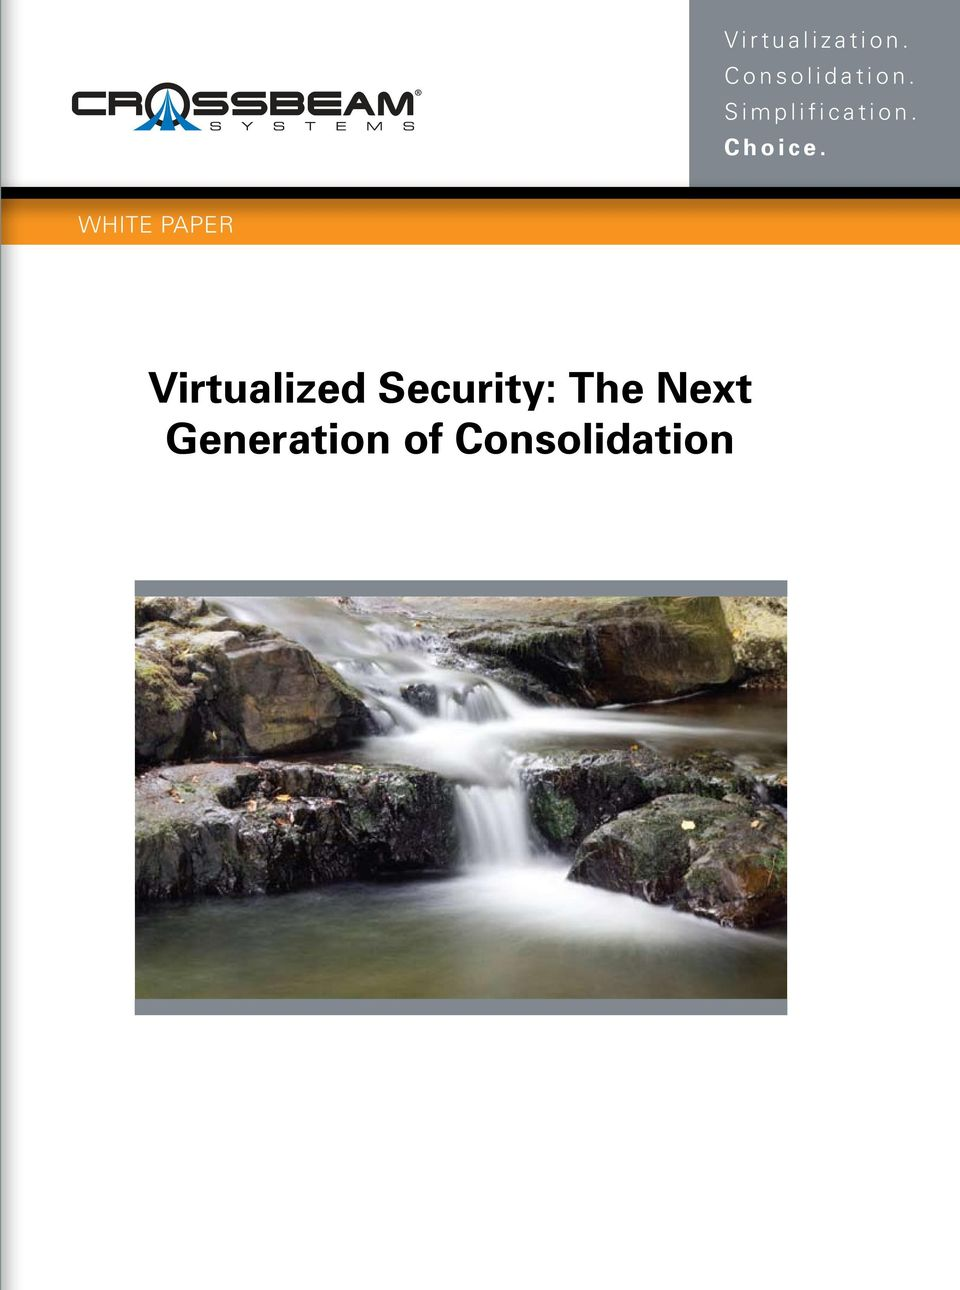 WHITE PAPER Virtualized